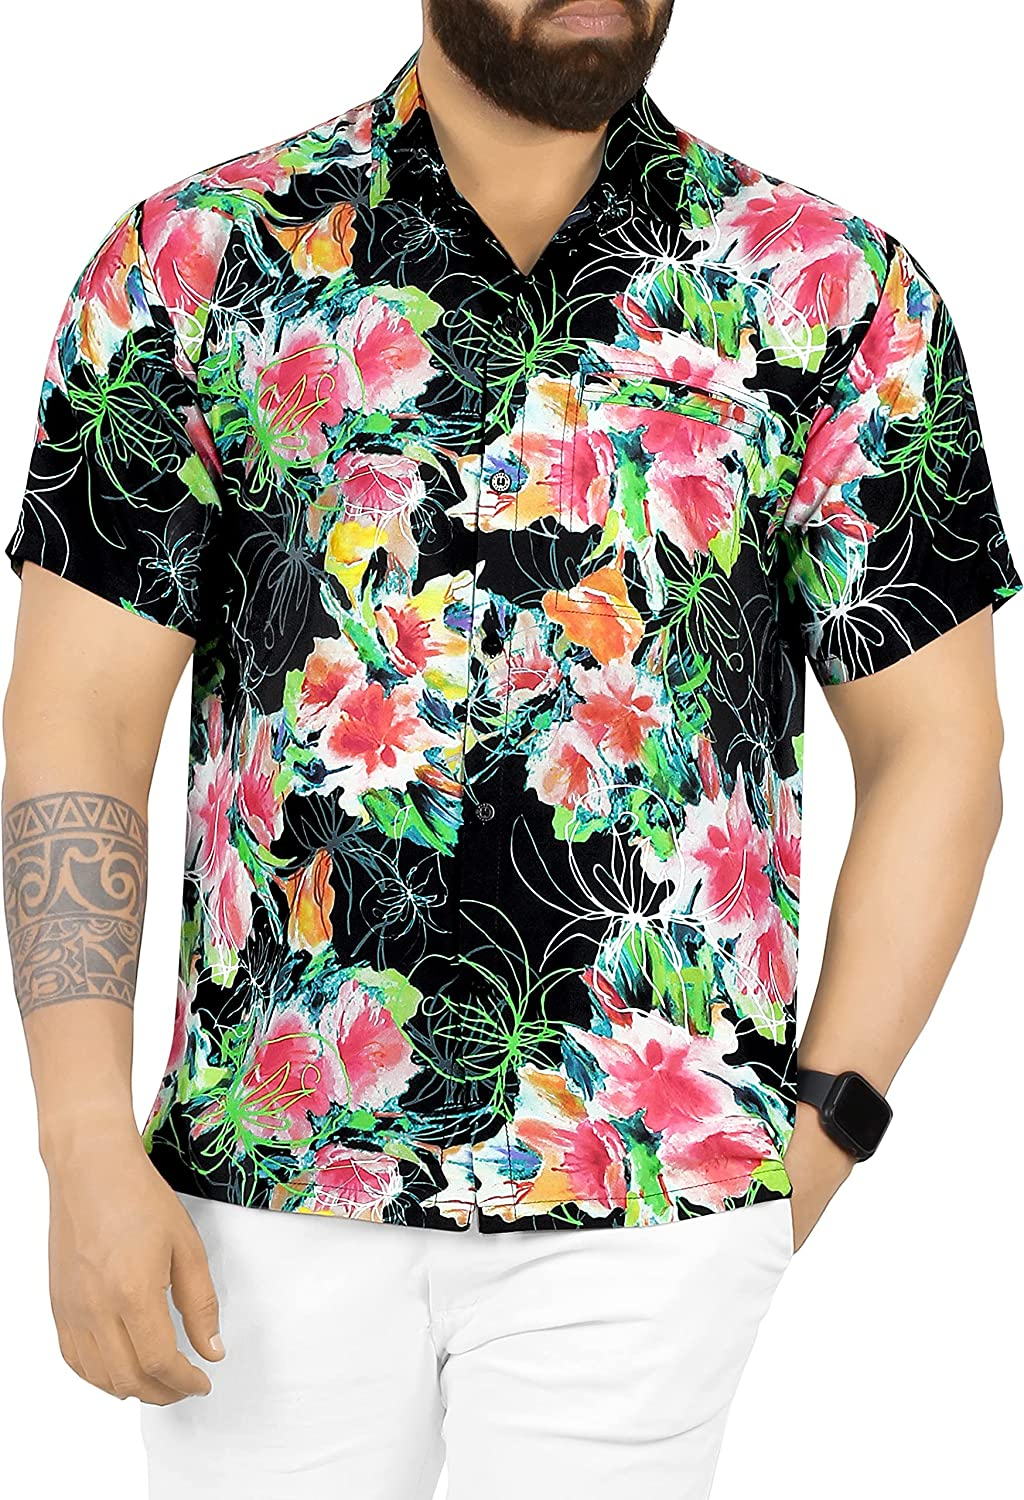 HAPPY New life BAY Men's Finally popular brand 3D HD Swim Short Relaxed Beach Camp Sleev Outfit